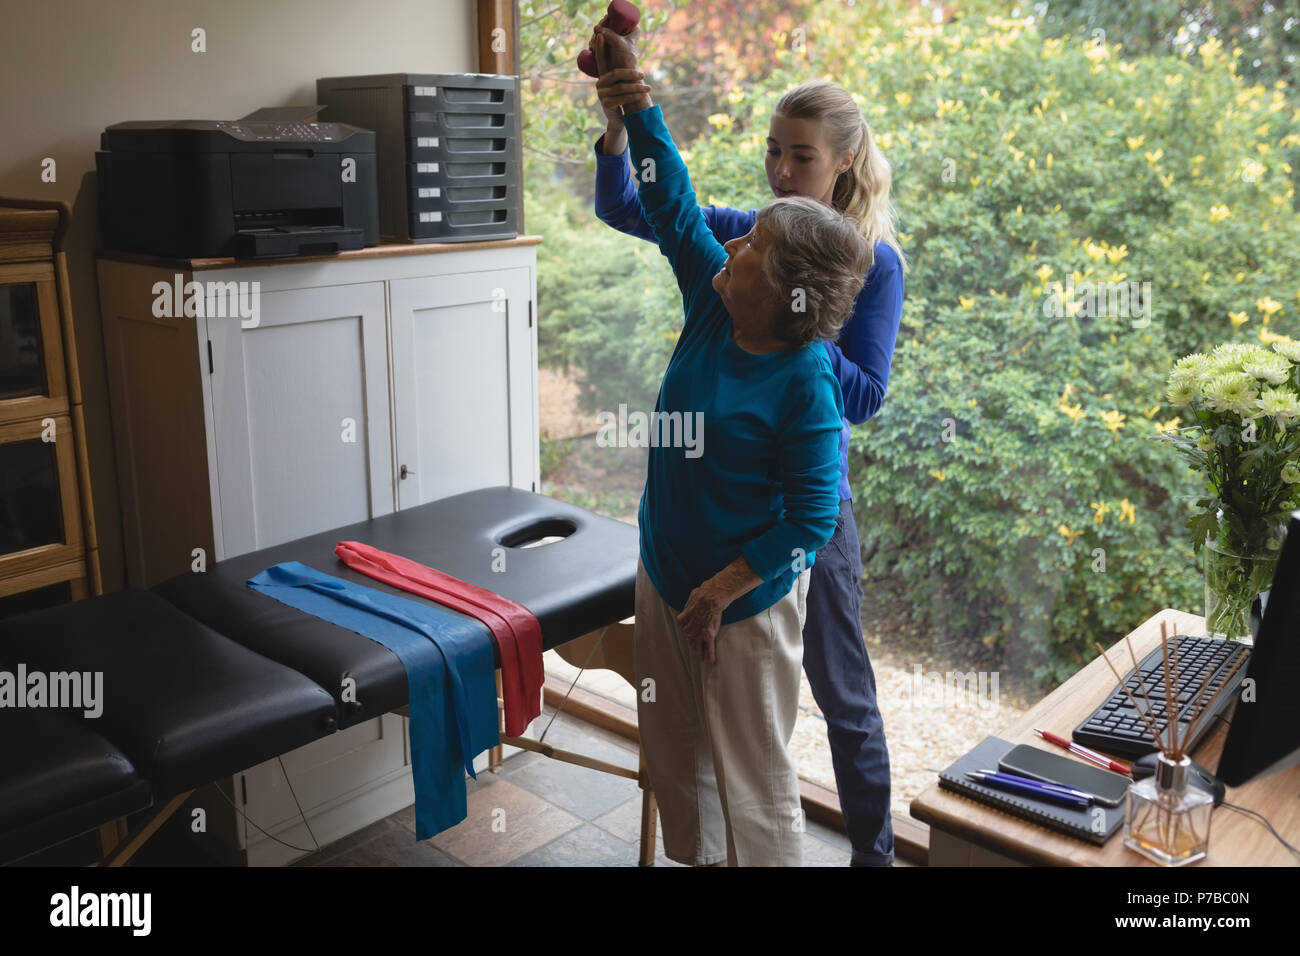 Physiotherapist assisting a senior woman with physiotherapy exercises - Stock Image